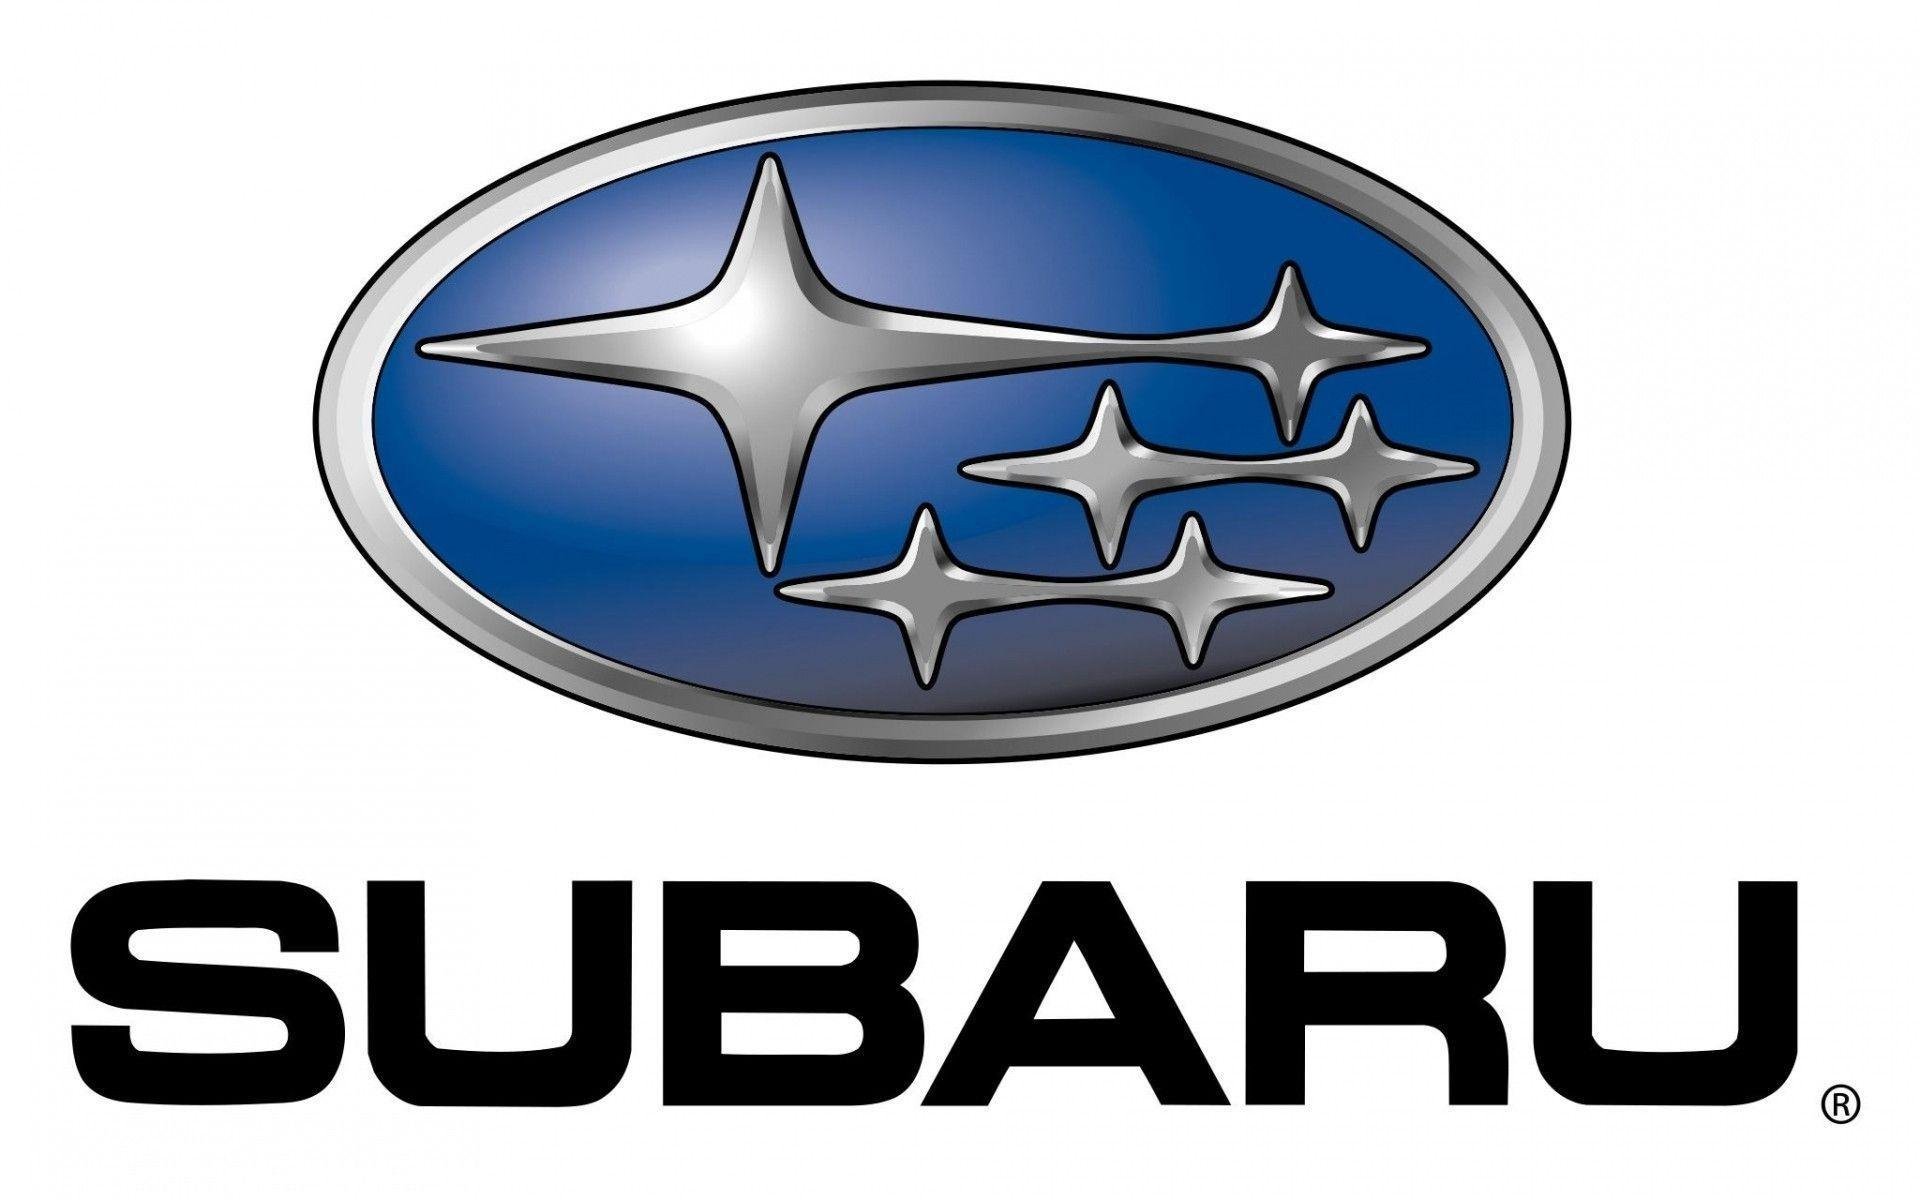 Subaru Car Company Logo HD Wallpapers #